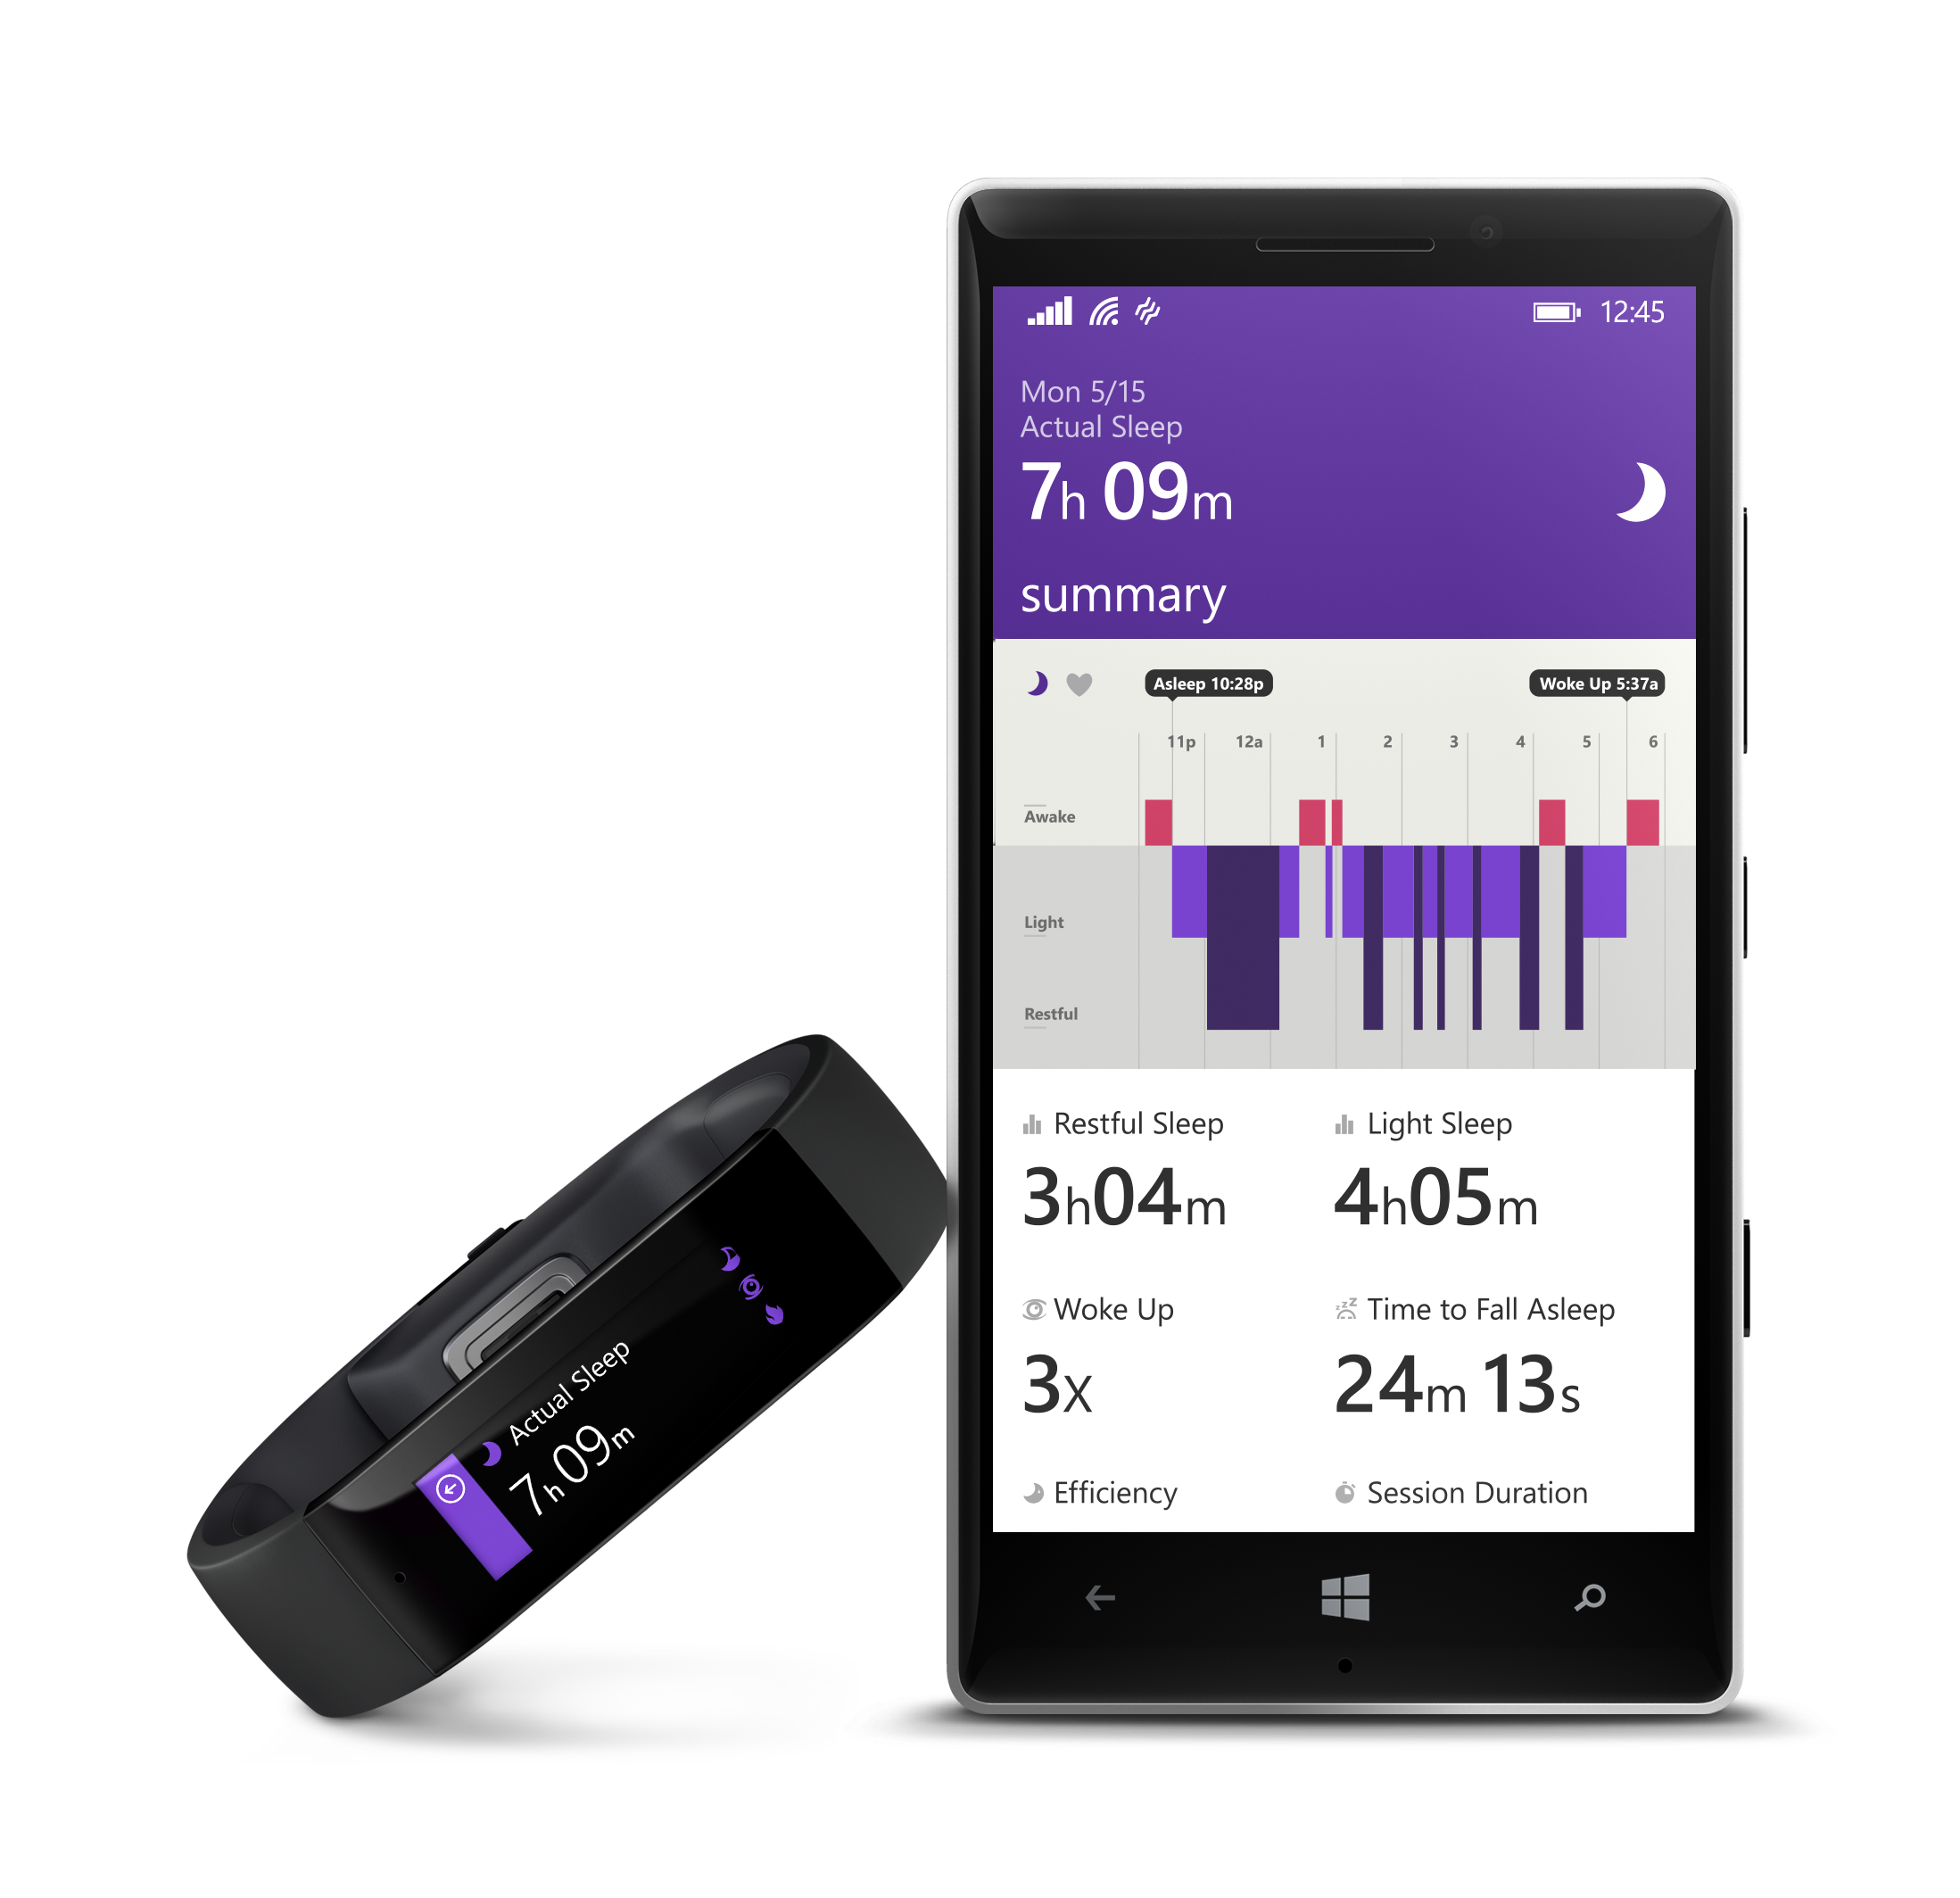 Microsoft Enters the Wearables Market with Band